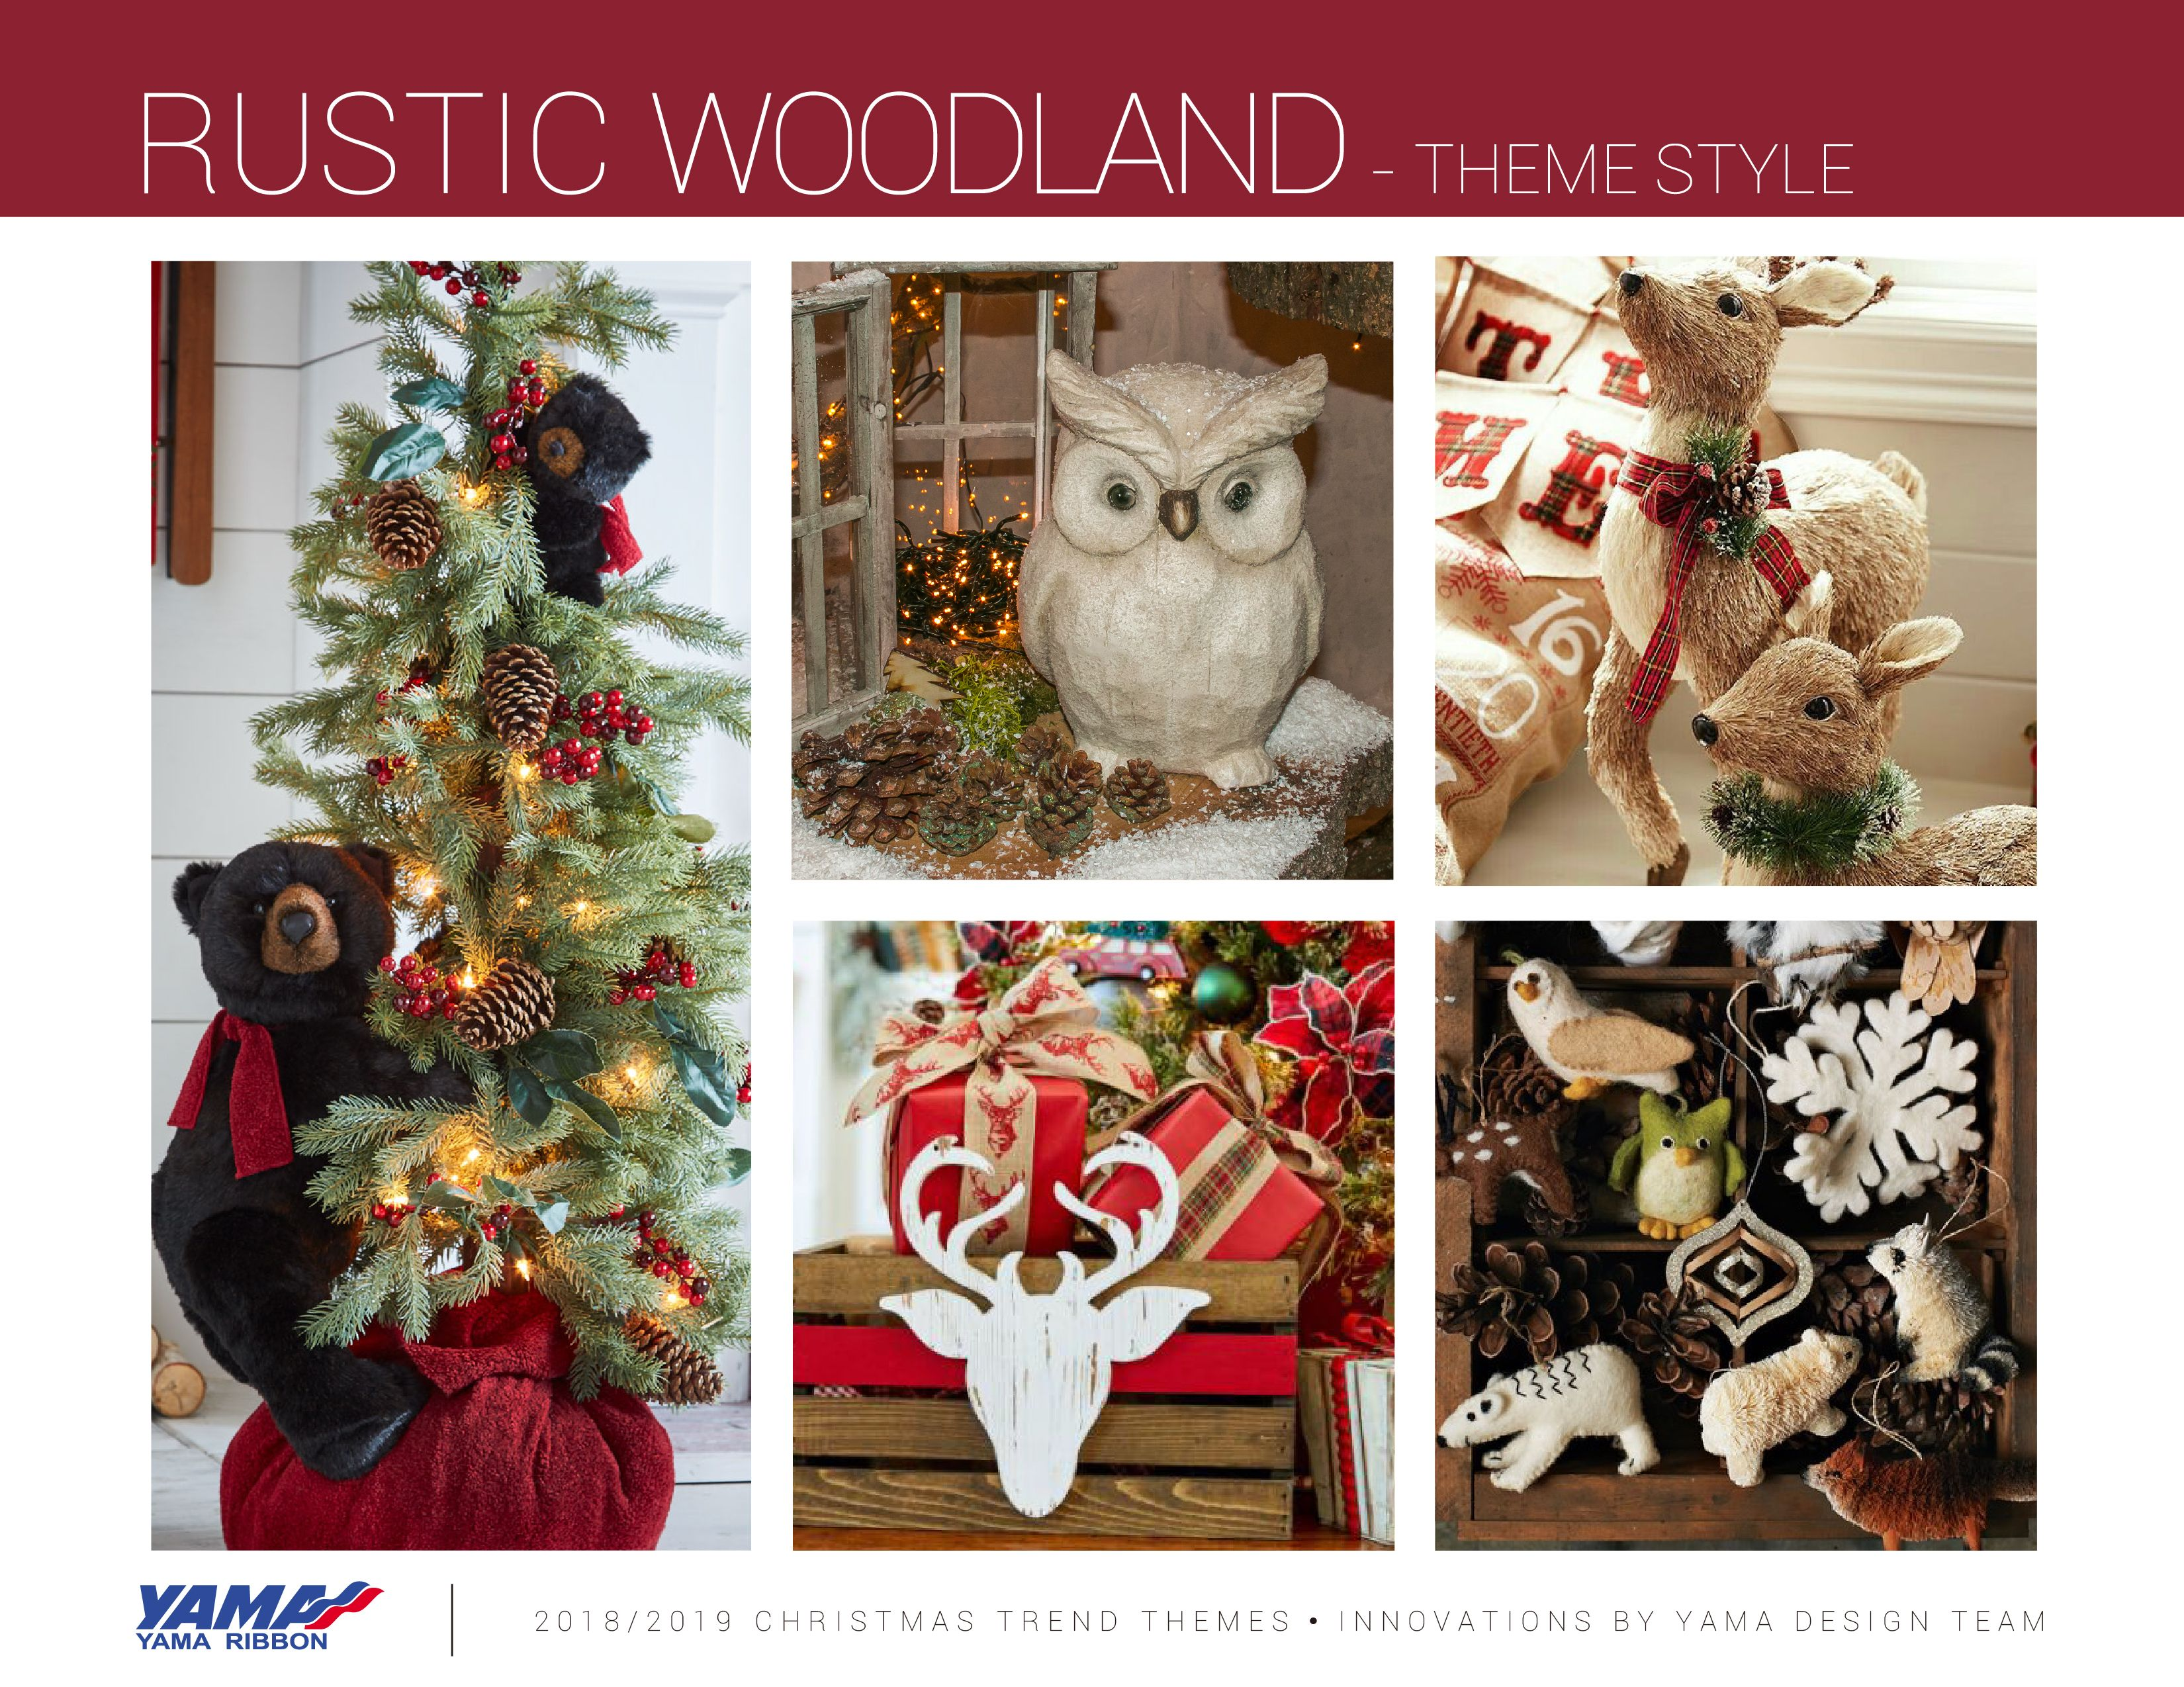 2019 Christmas Tree Trends 2018/2019 YAMA CHRISTMAS TRENDS 11 | 2018 2019 Christmas trend by